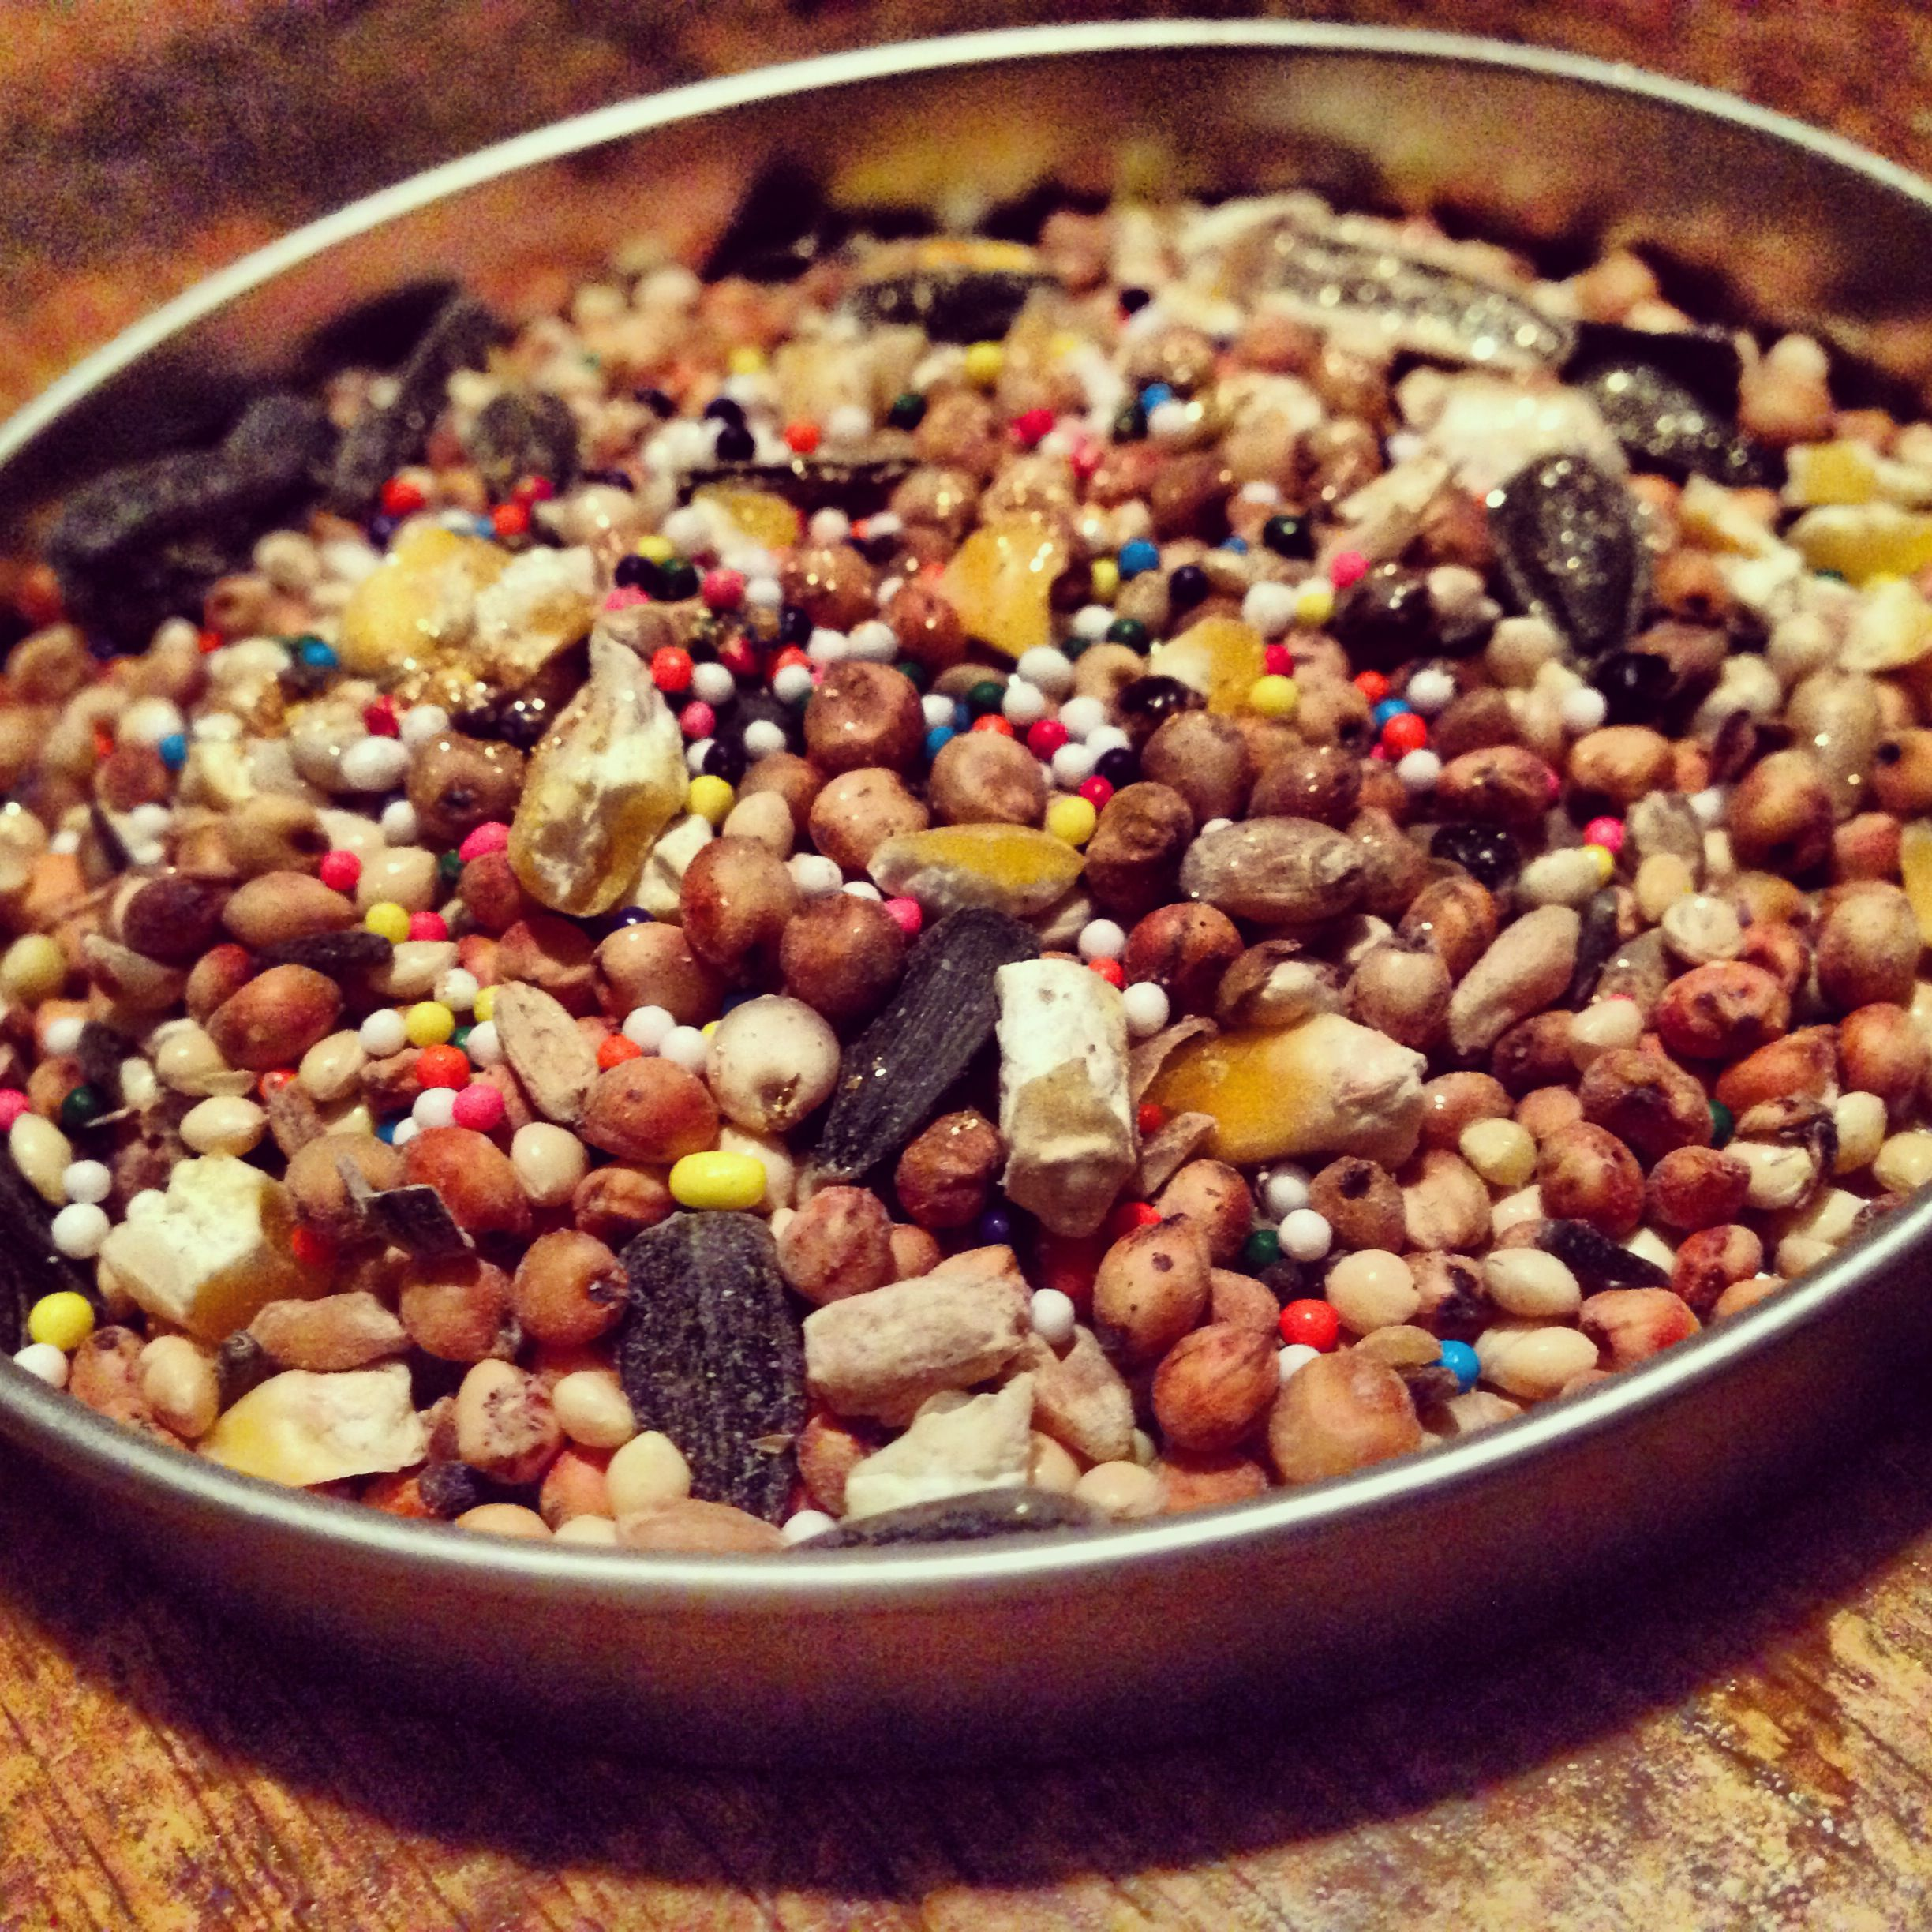 MAGIC Reindeer Food Get ready for Christmas with our MAGIC reindeer food. Sprinkle in your lawn ...